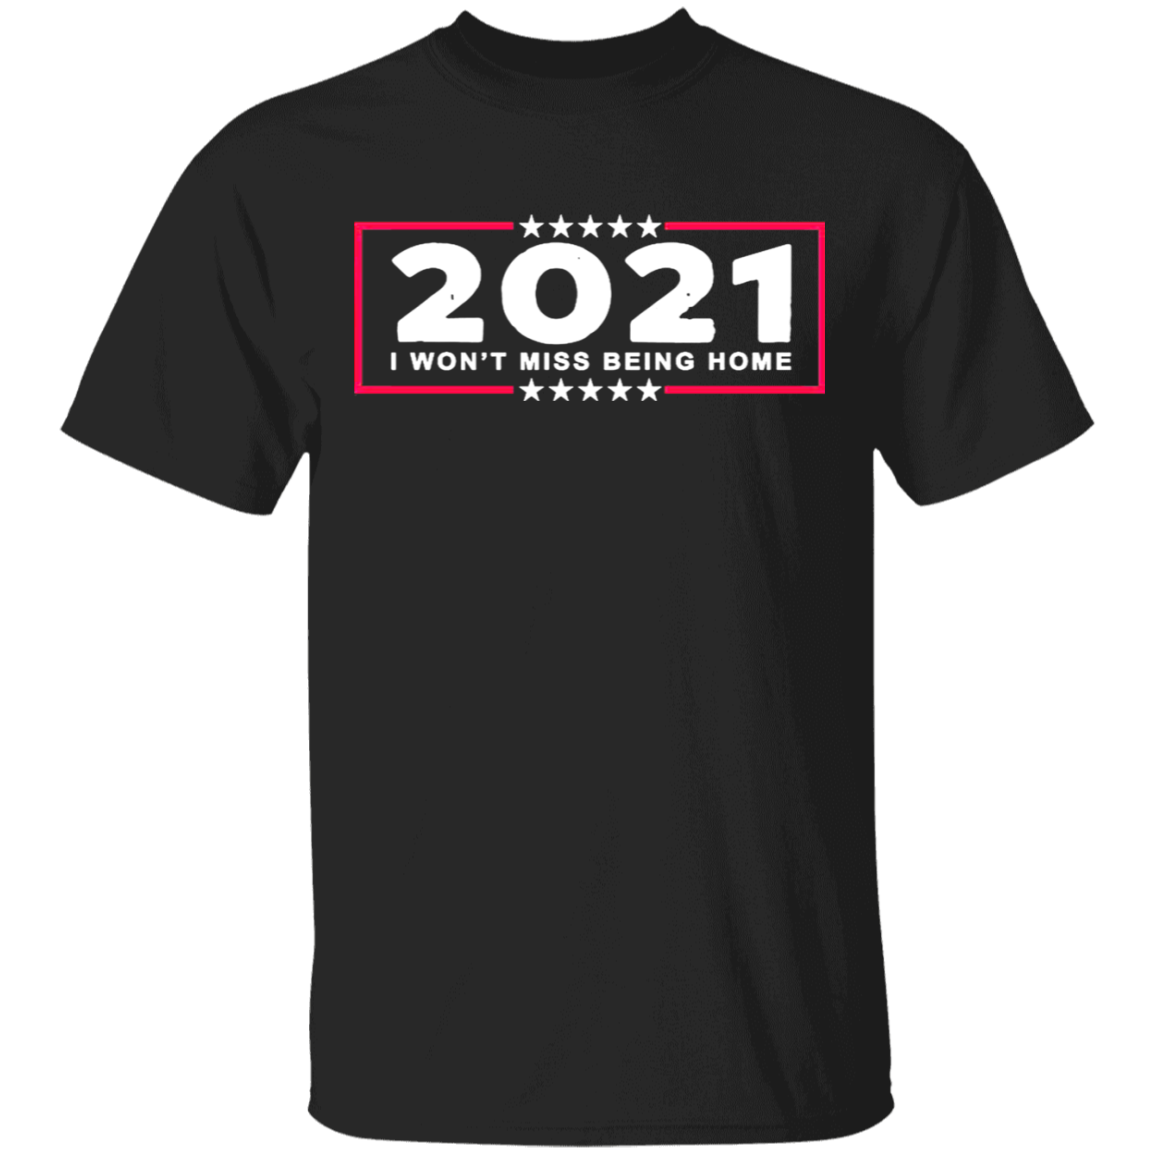 2021 Won't Miss Being Home Shirt Goodbye 2020 Hello 2021 New Year Shirt For Men For Women